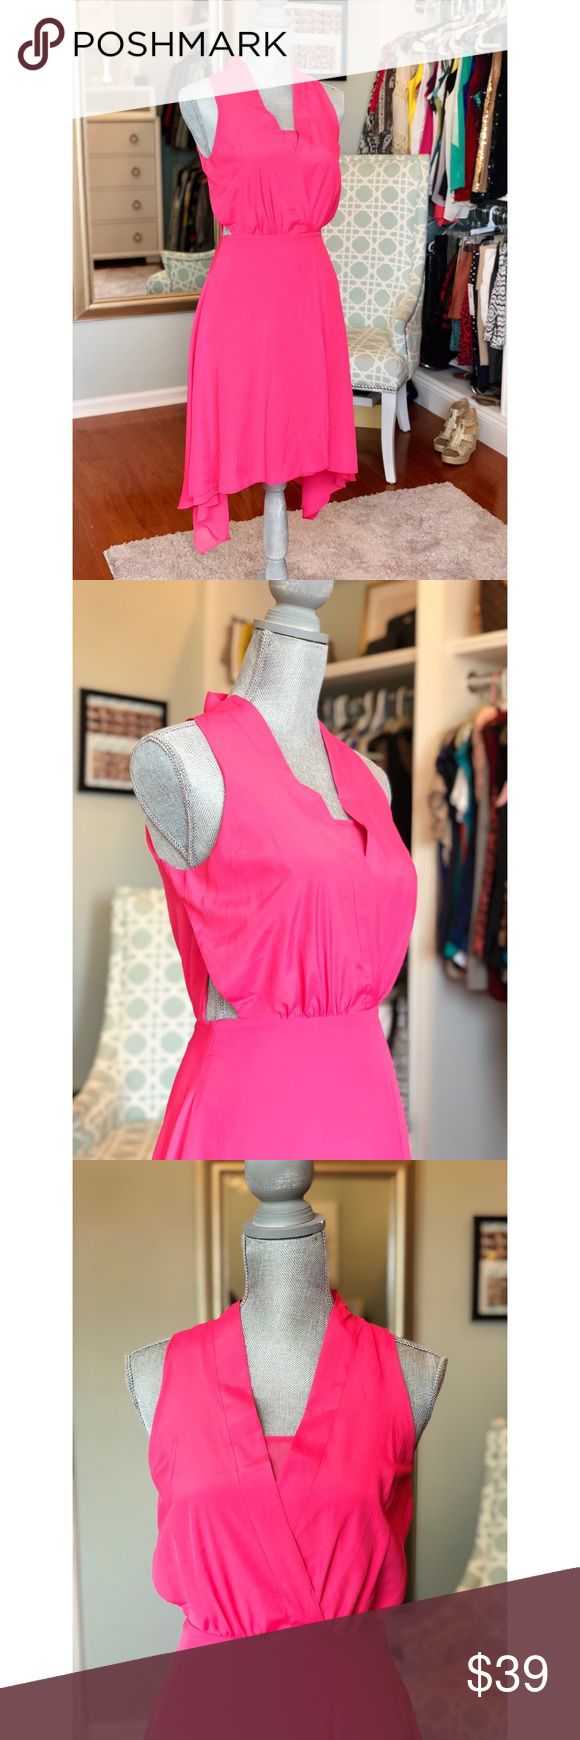 Walter Baker dress! Brand new pink asymmetrical dress by Walter Baker! Very flowy and lightweight with unique cut outs on sides. Size XS. NO trades. Bundle for additional discounts! W118 by Walter Baker Dresses Asymmetrical